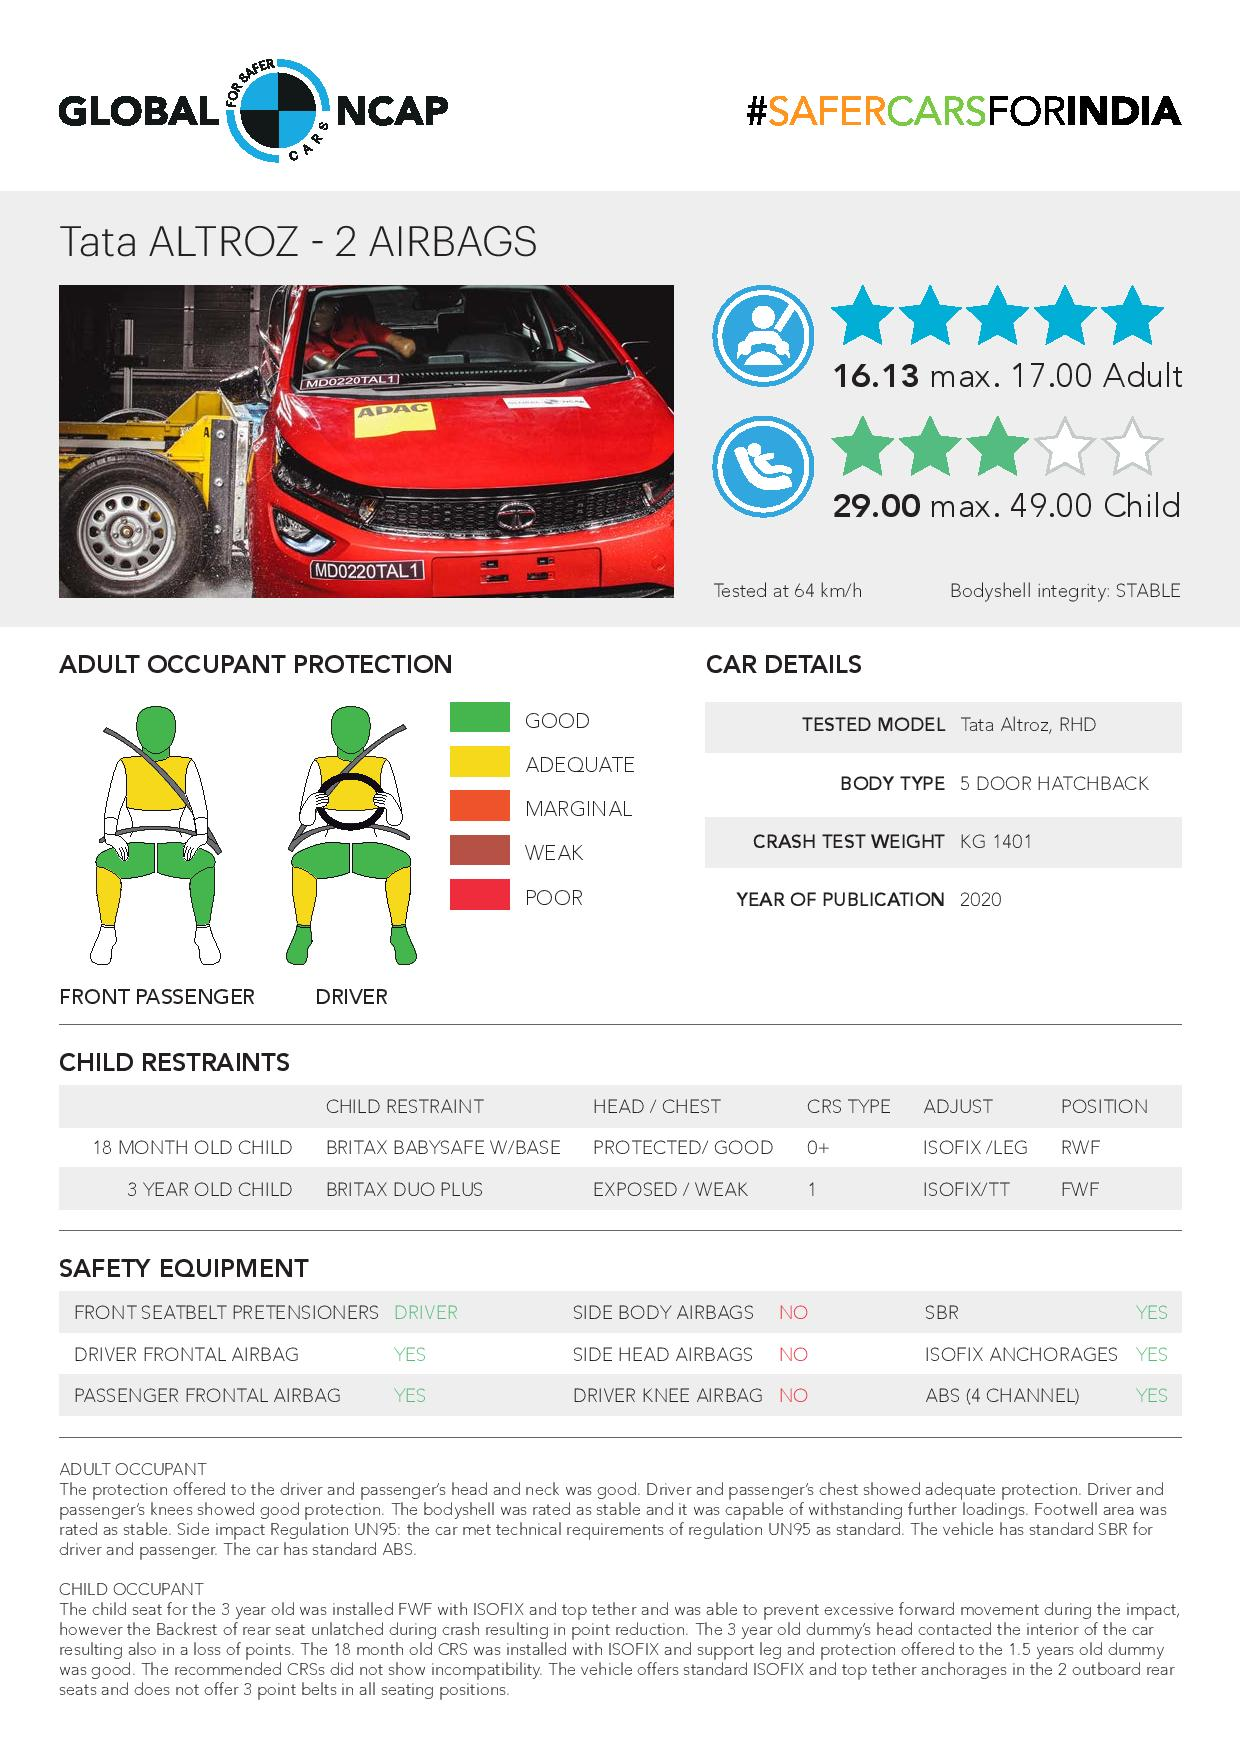 Tata Altroz safety rating